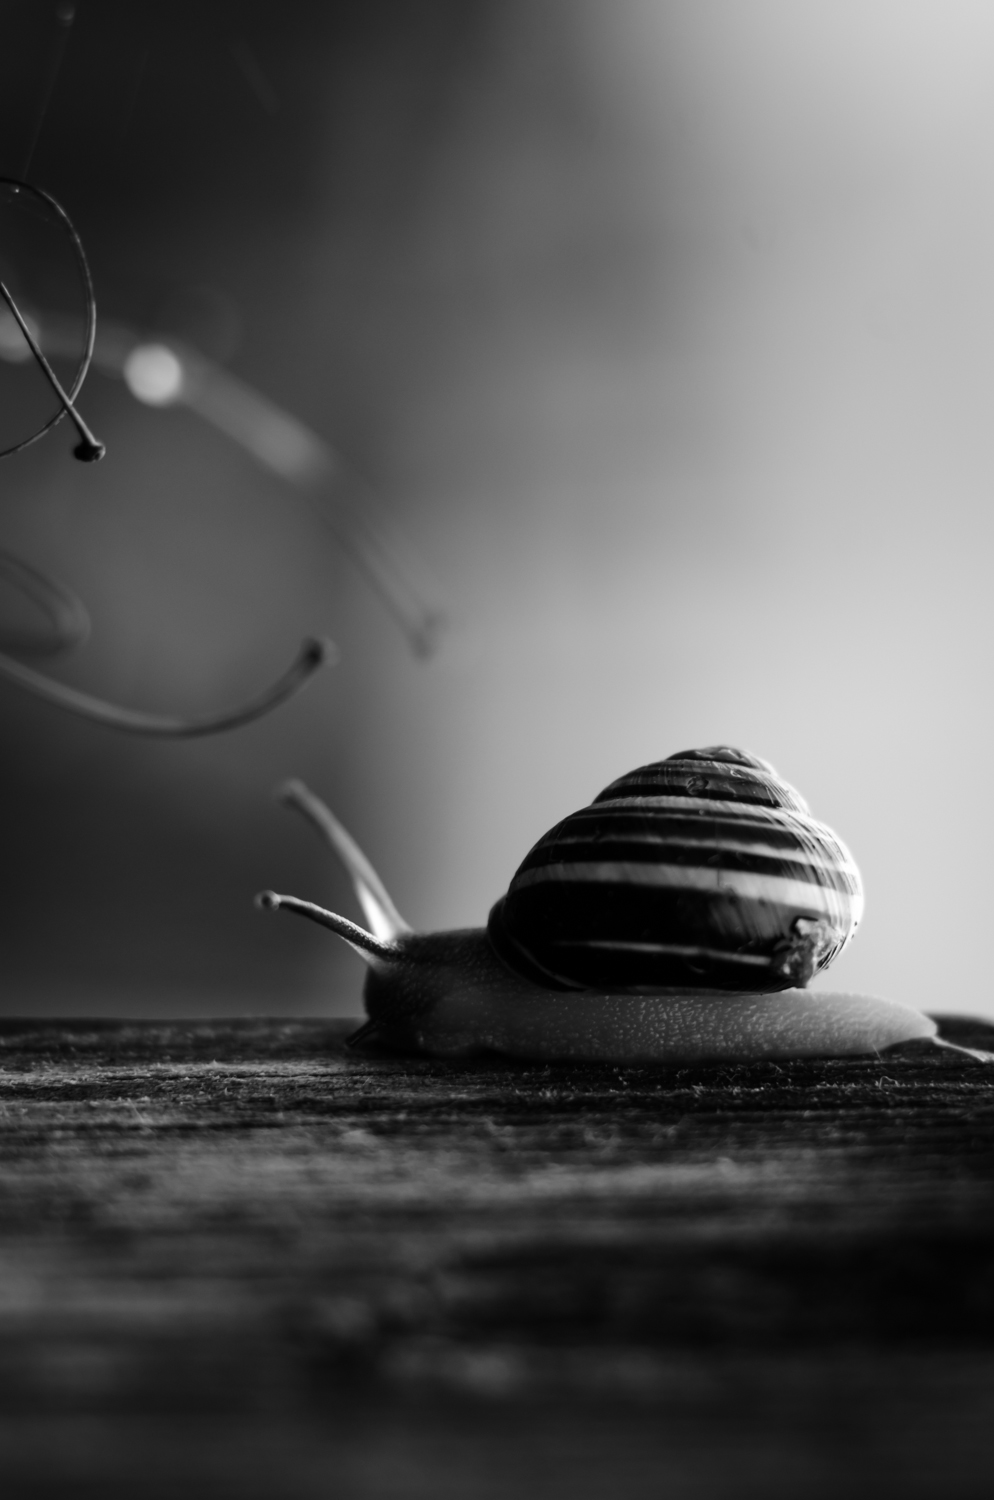 a black and white photo of a snail